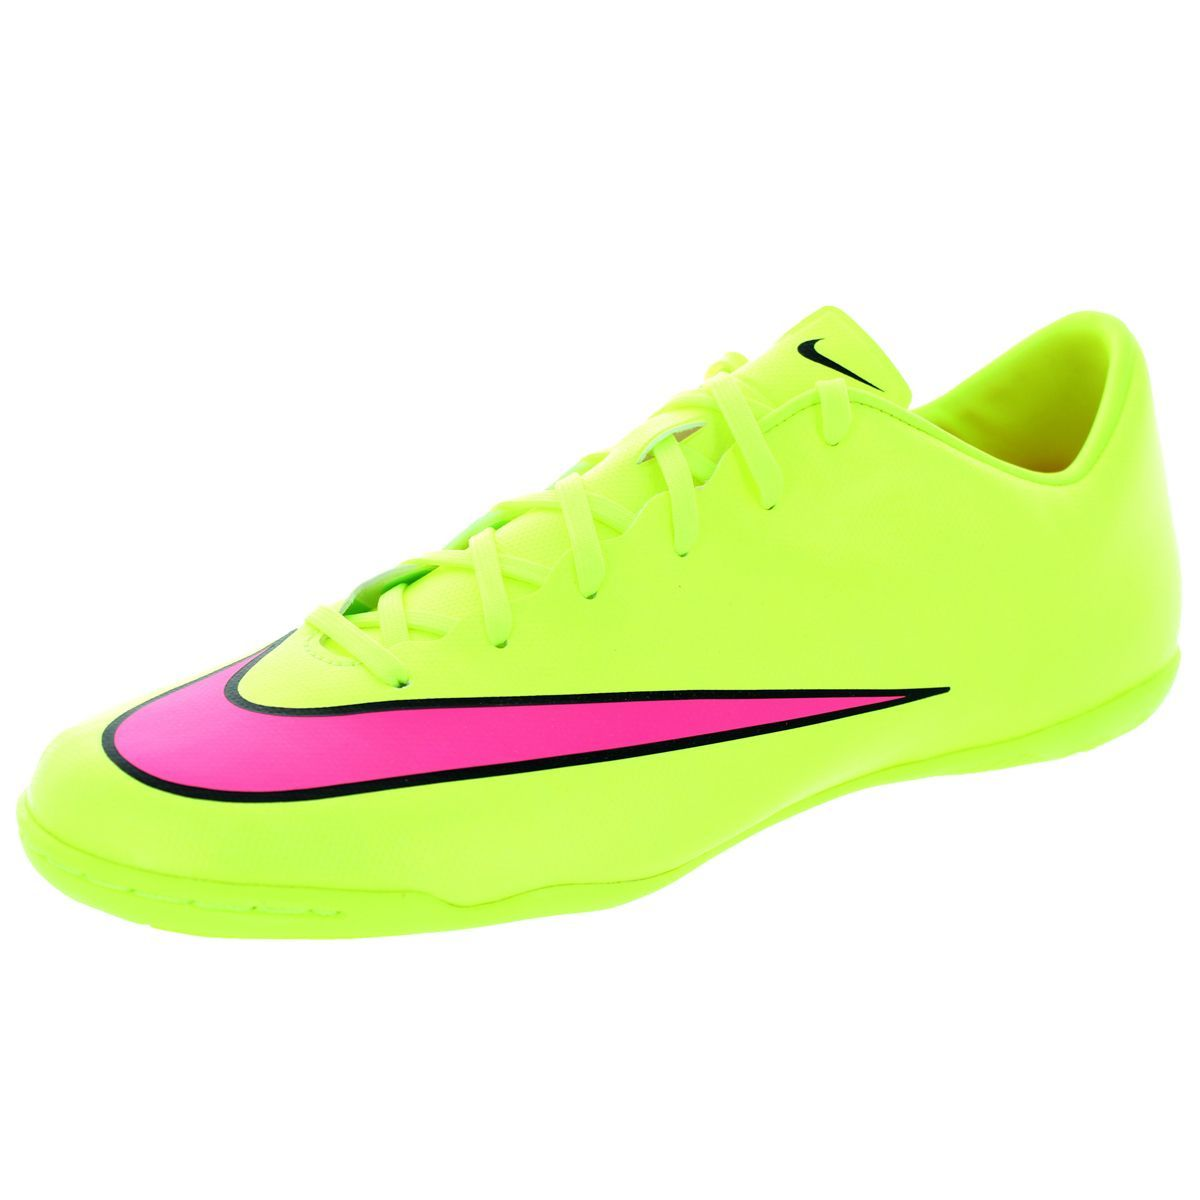 Nike Men's Mercurial Victory V Ic Volt/Hyper Pink/Black Indoor Soccer Shoe